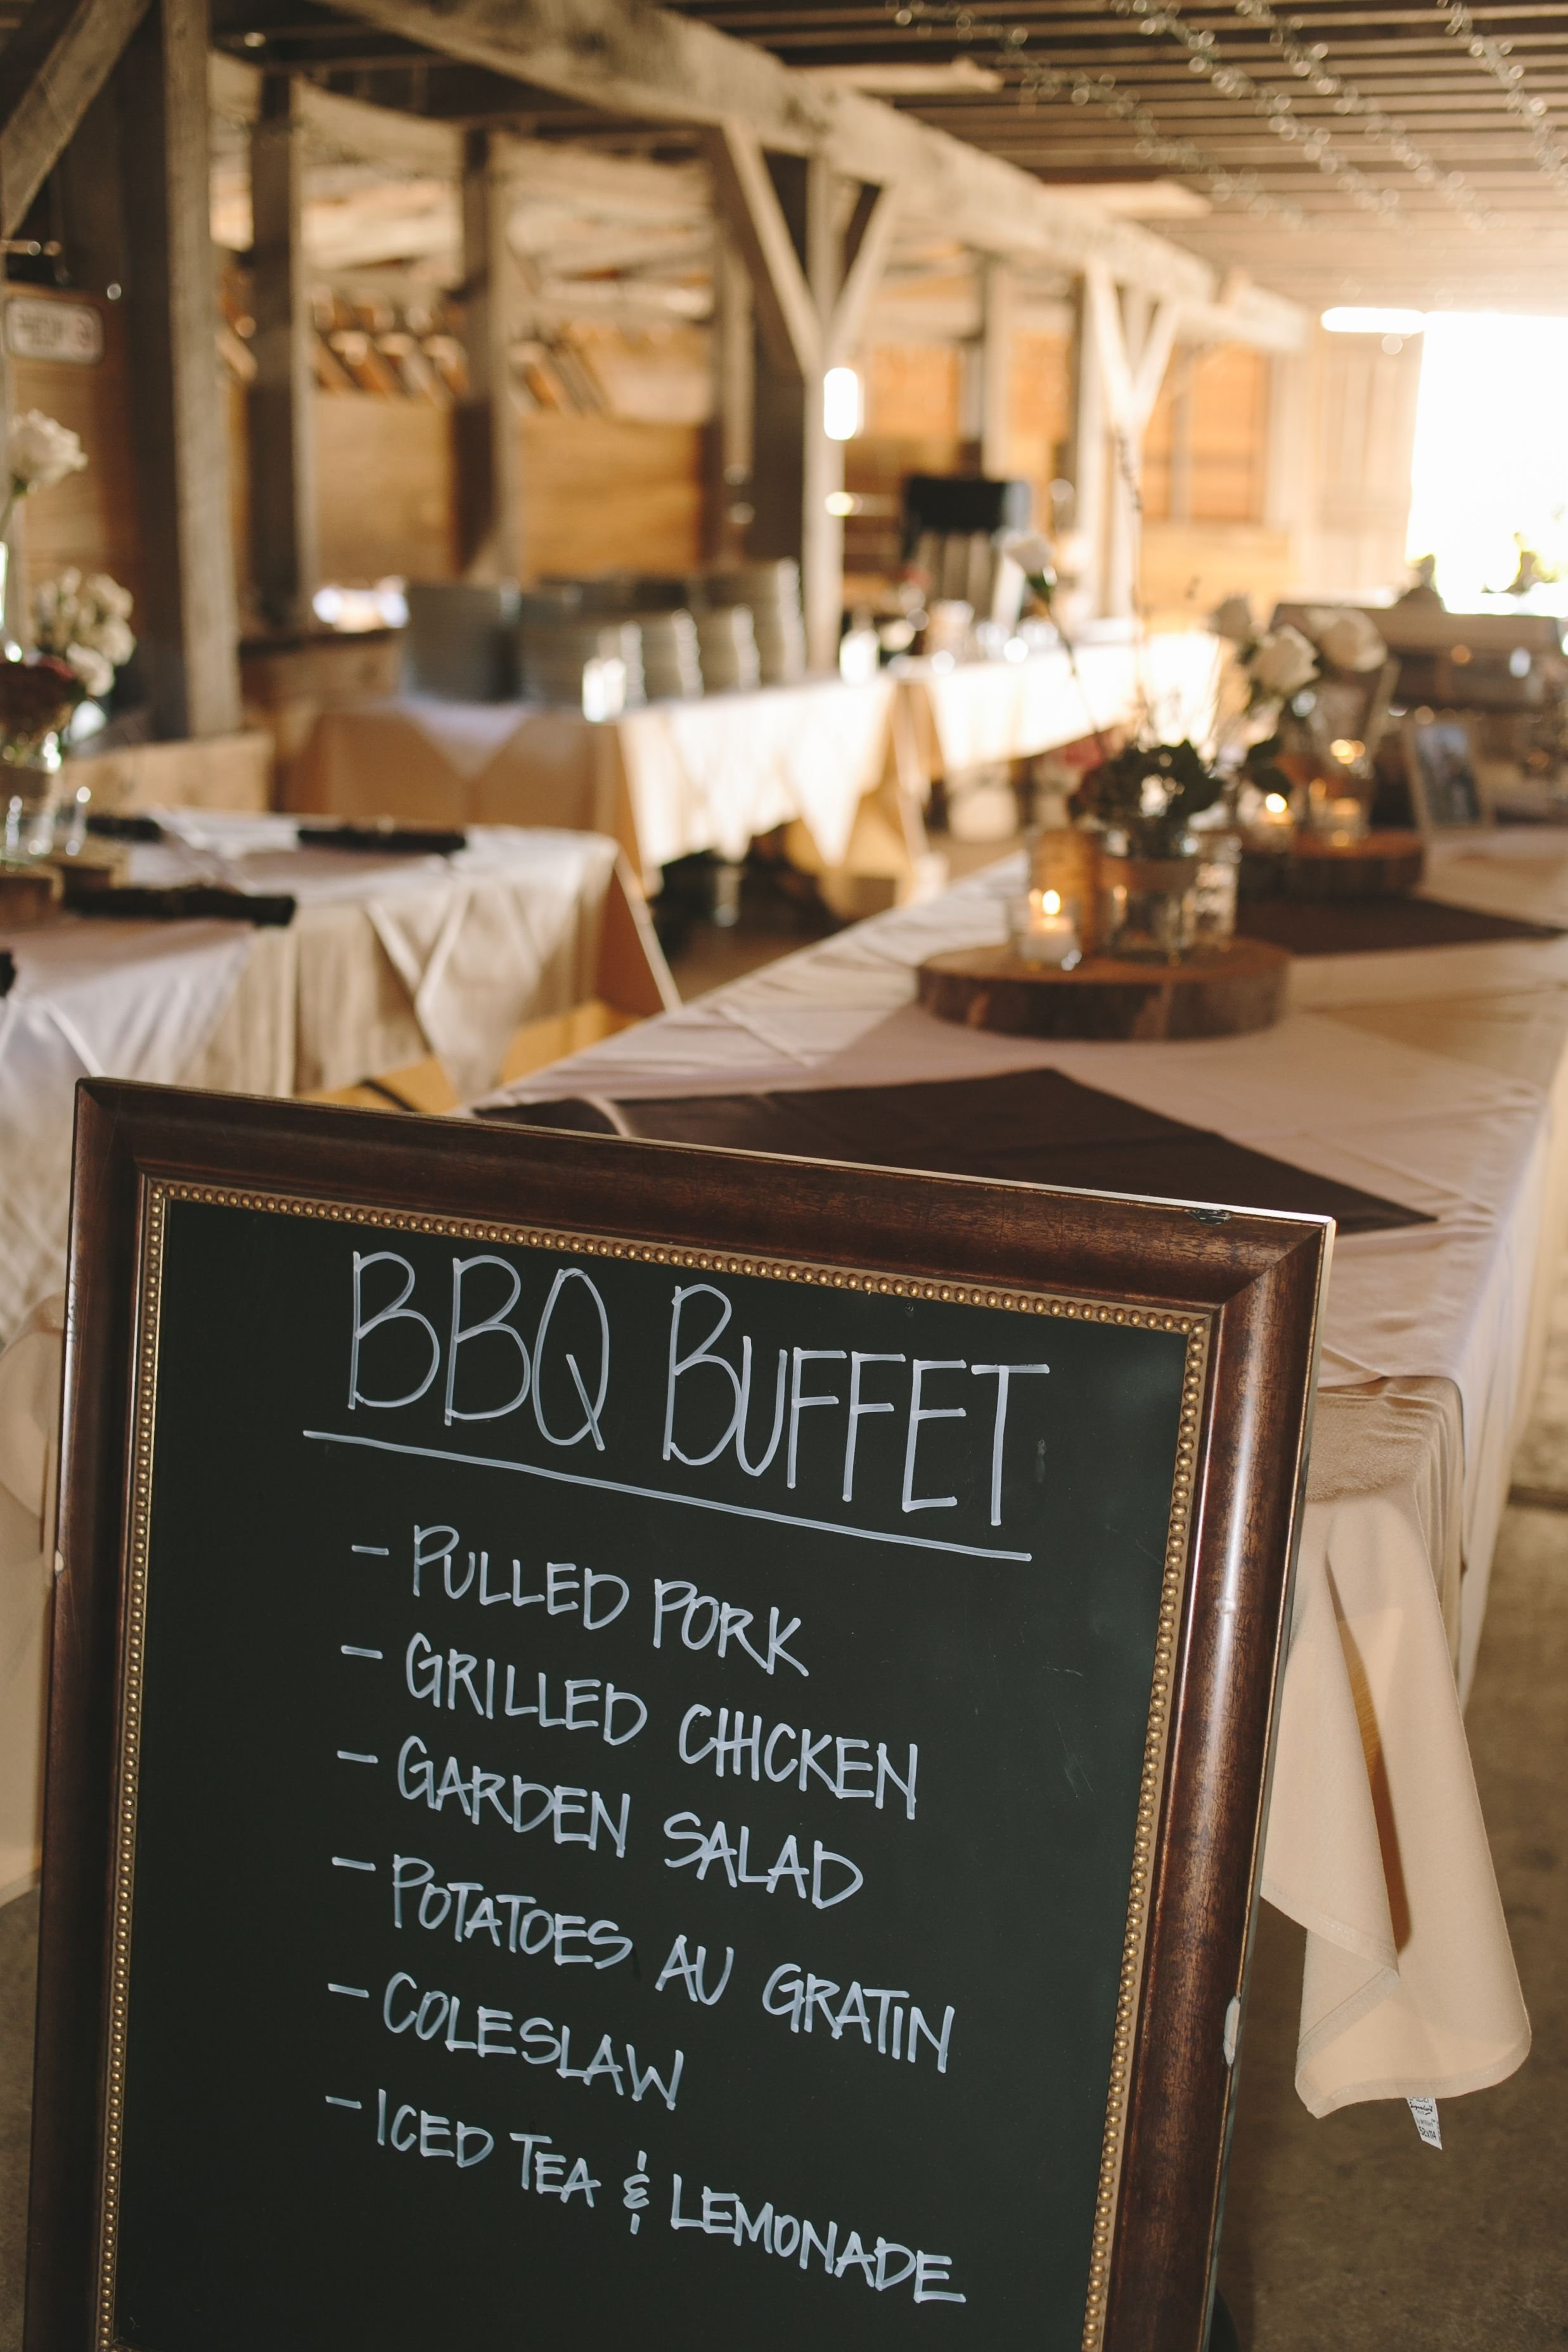 10 Lovely Wedding Rehearsal Dinner Ideas On A Budget barbecue buffet reception dinner with chalkboard menu pinteres 1 2020